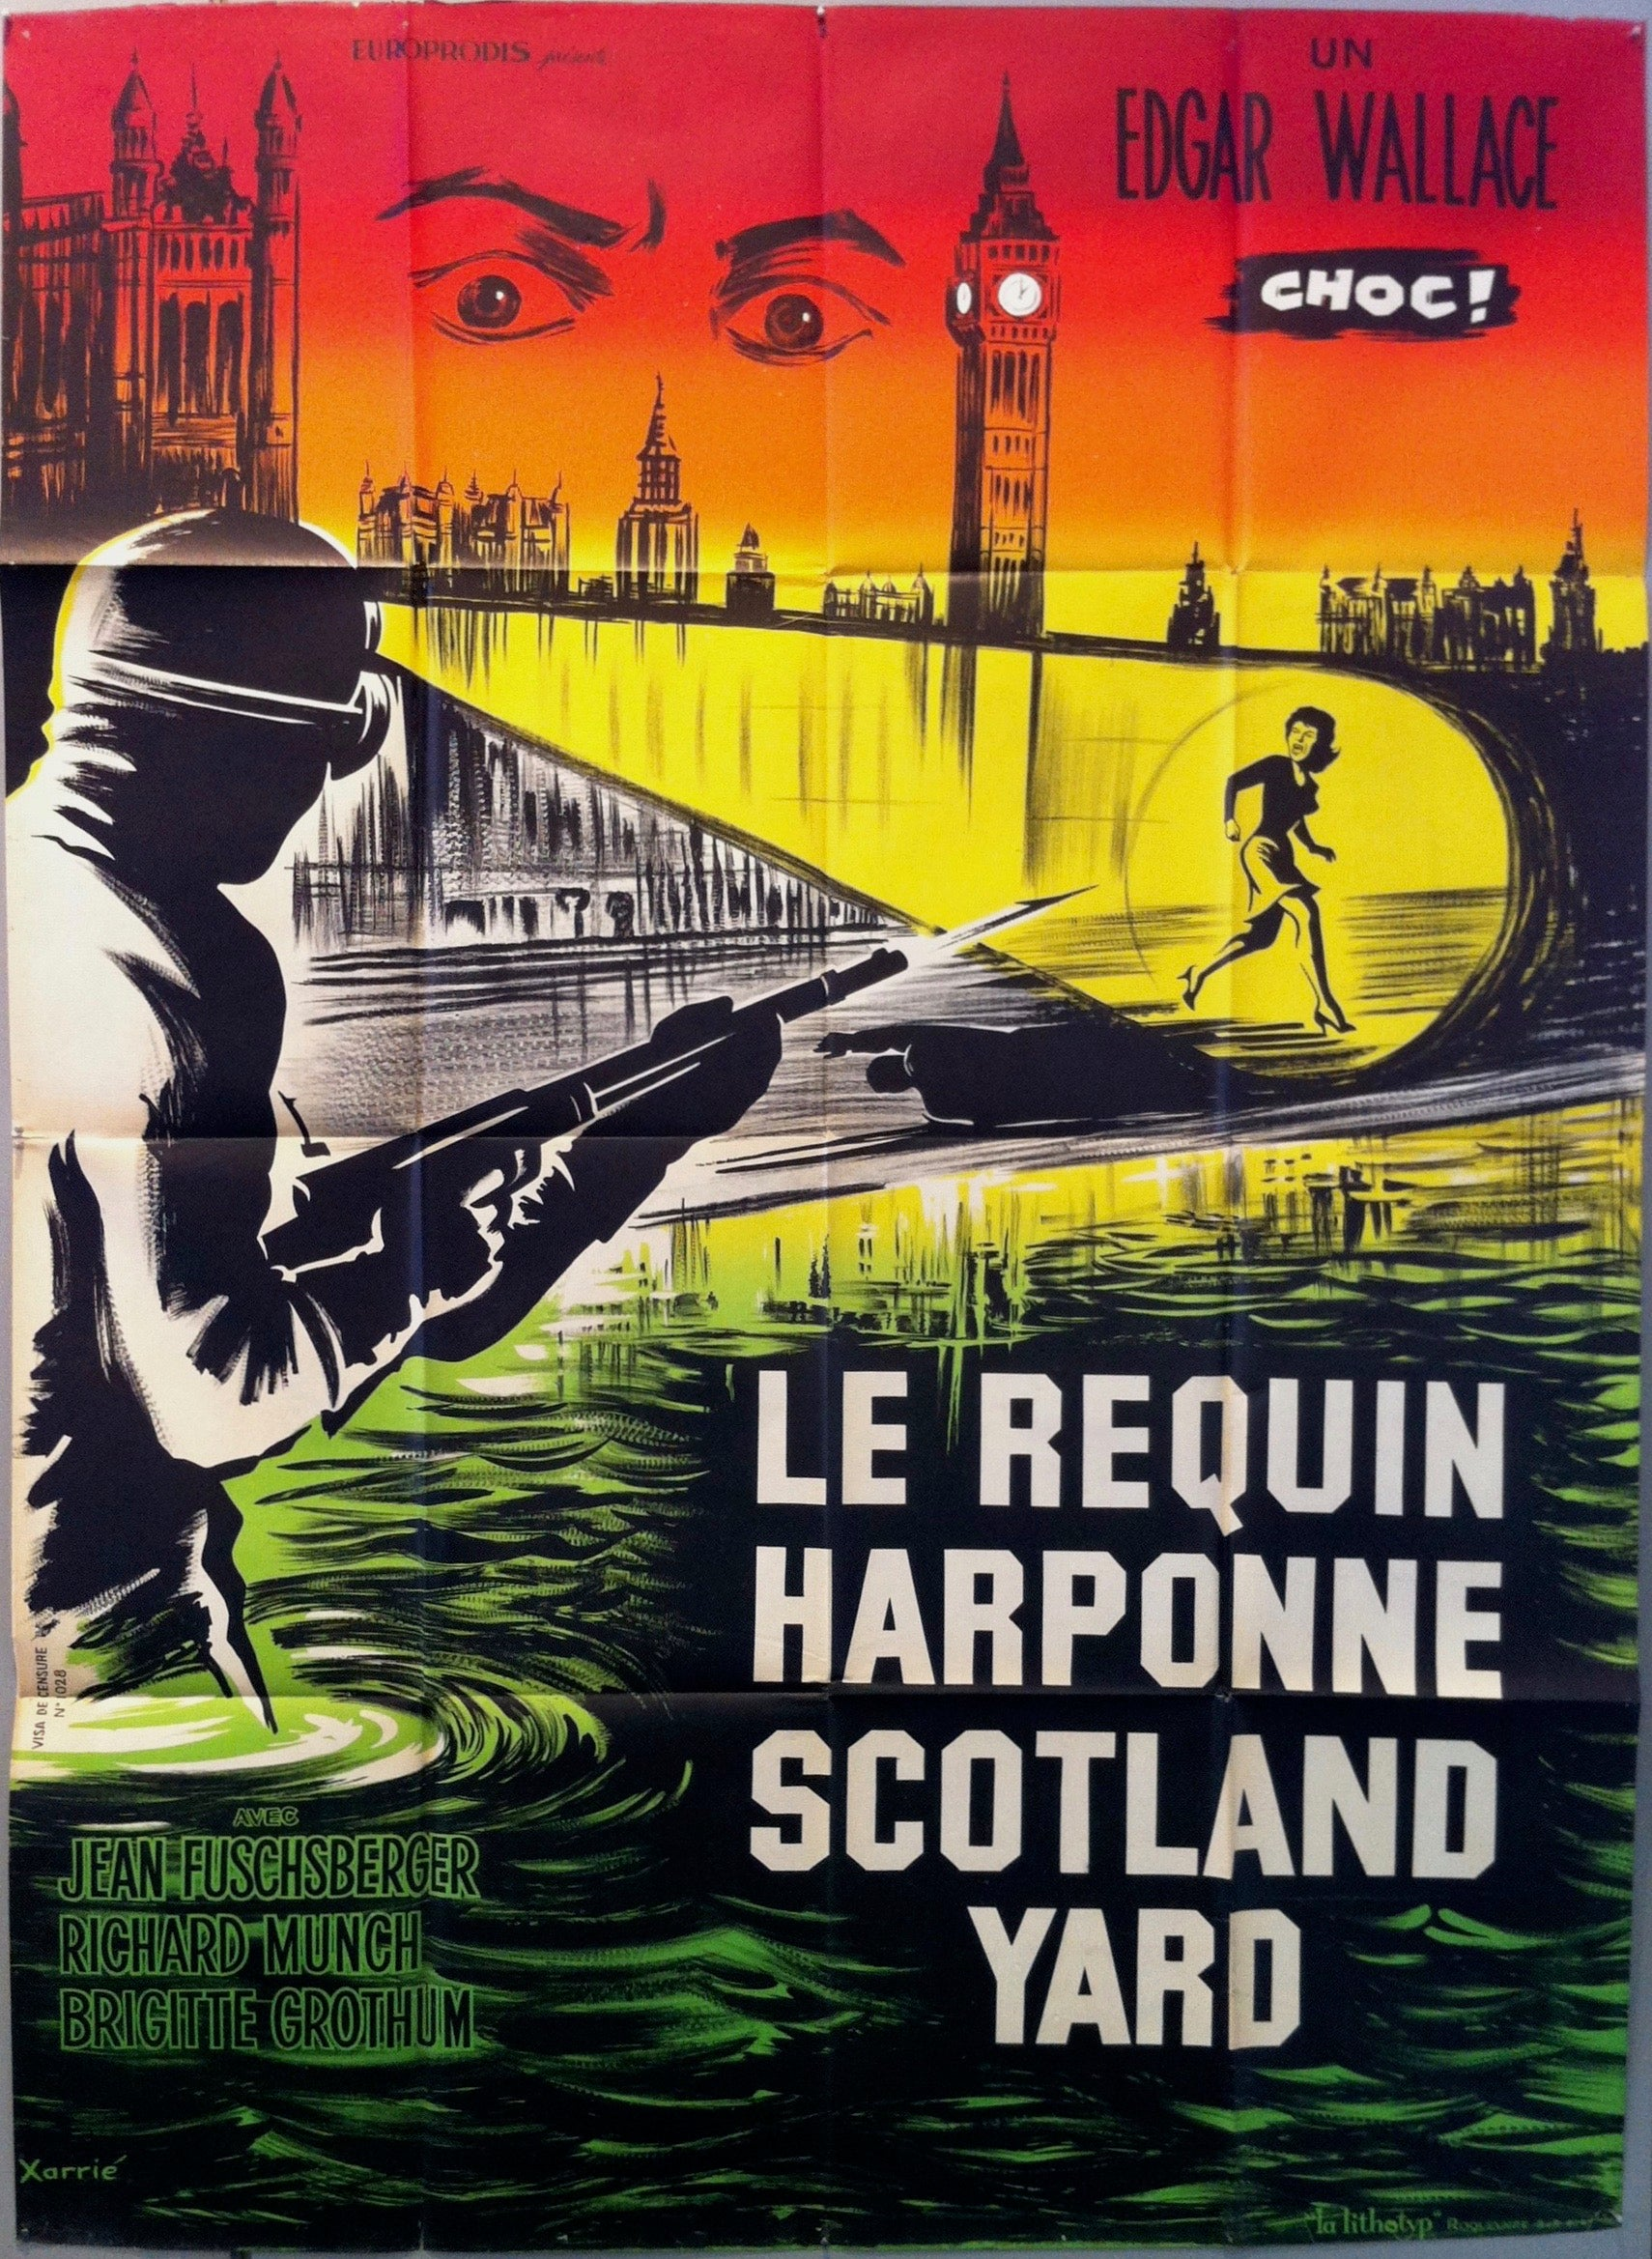 Le Requin Harponne Scotland Yard